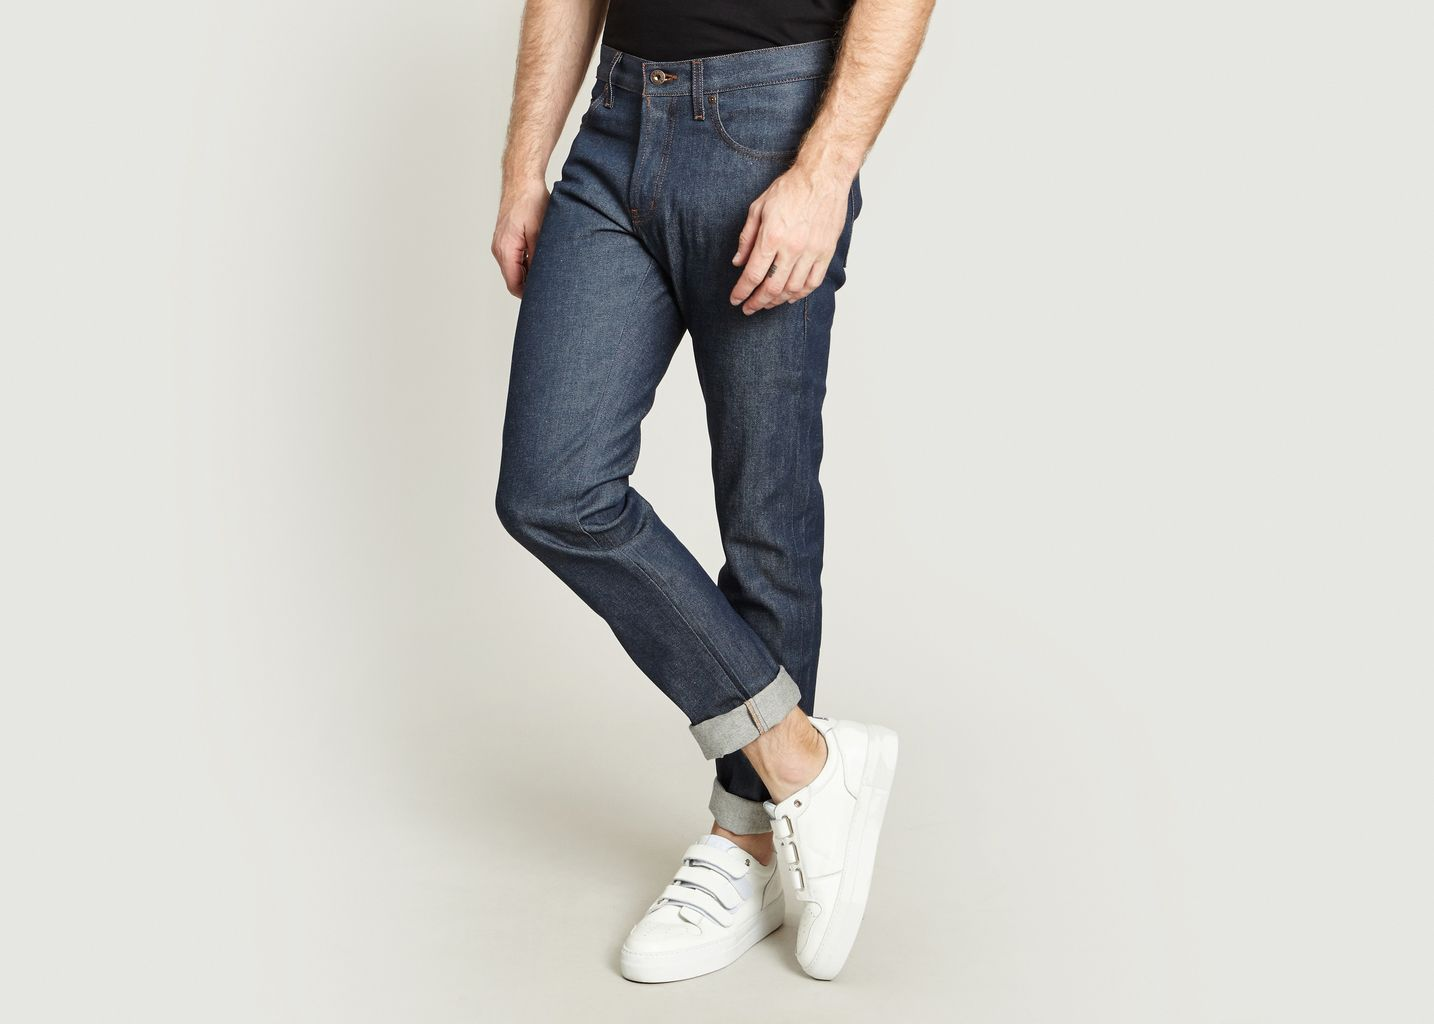 Jean Weird Guy Natural Selvedge - Naked and Famous